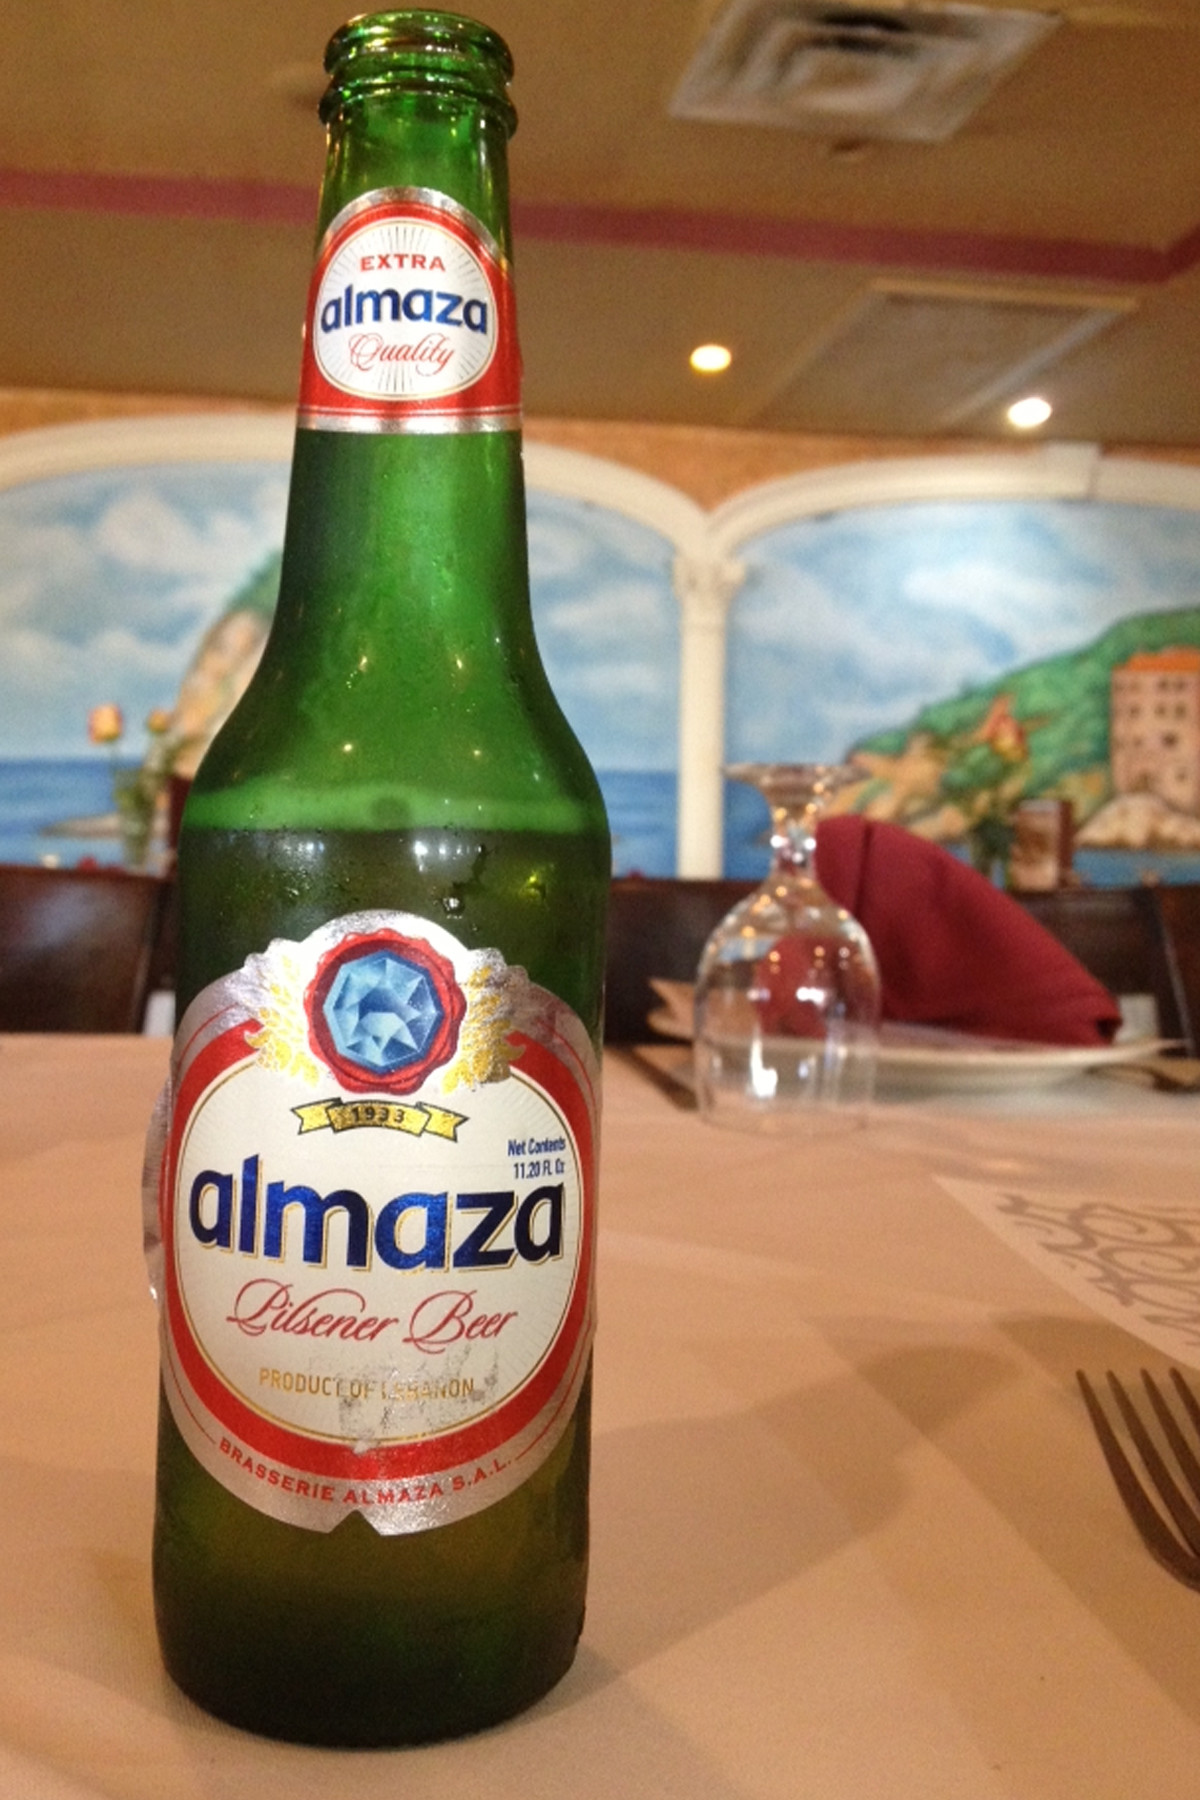 Try a cold bottle of Almaza, a pale lager beer from Lebanon.